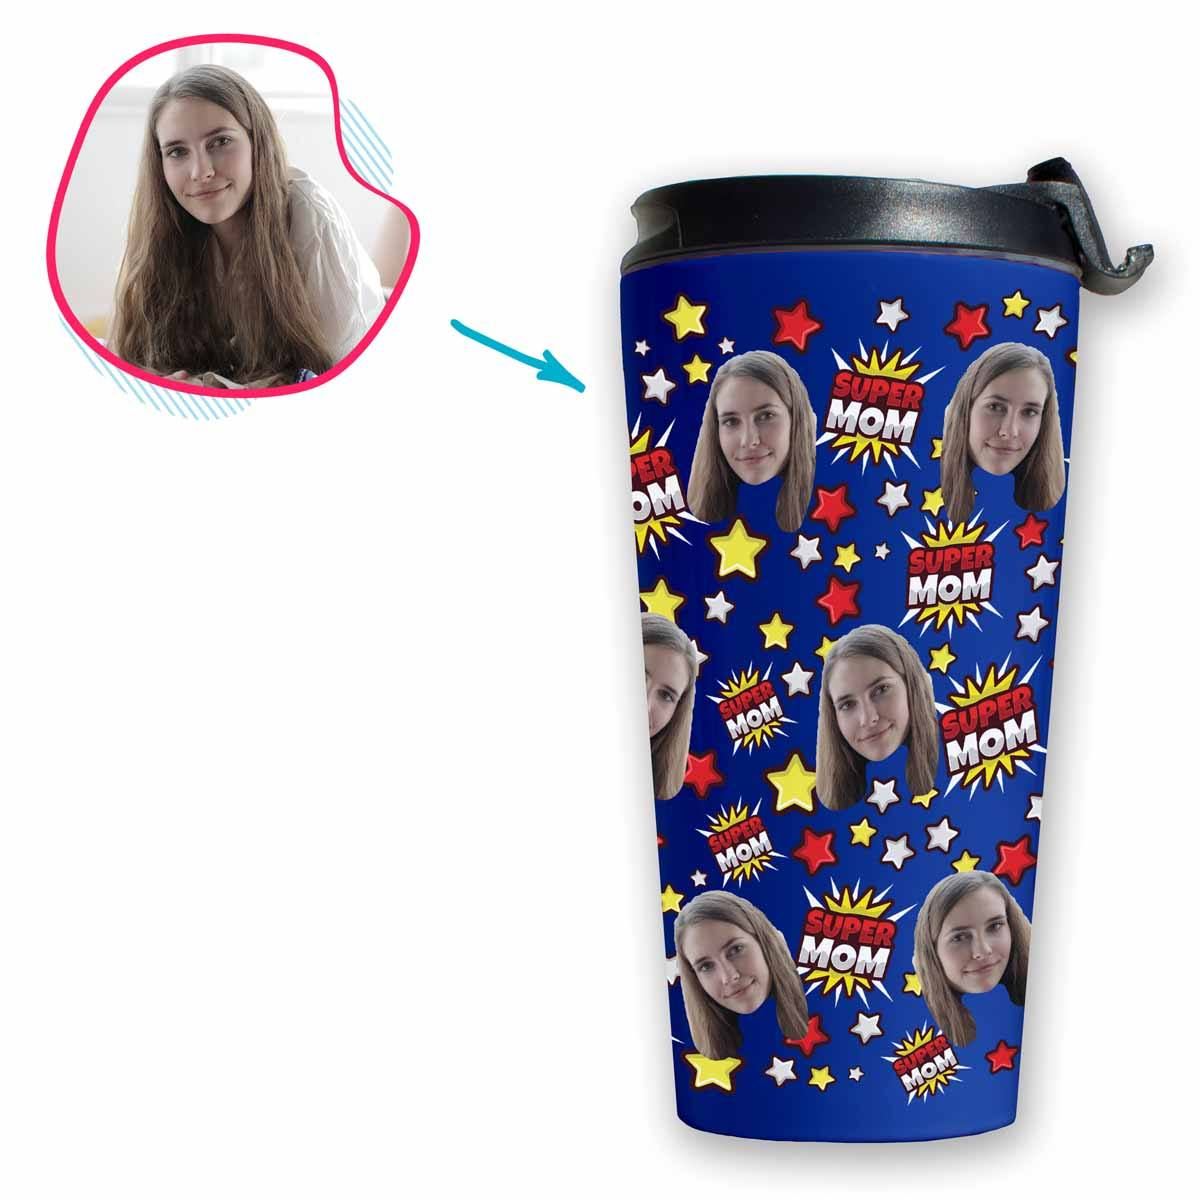 darkblue Super Mom travel mug personalized with photo of face printed on it